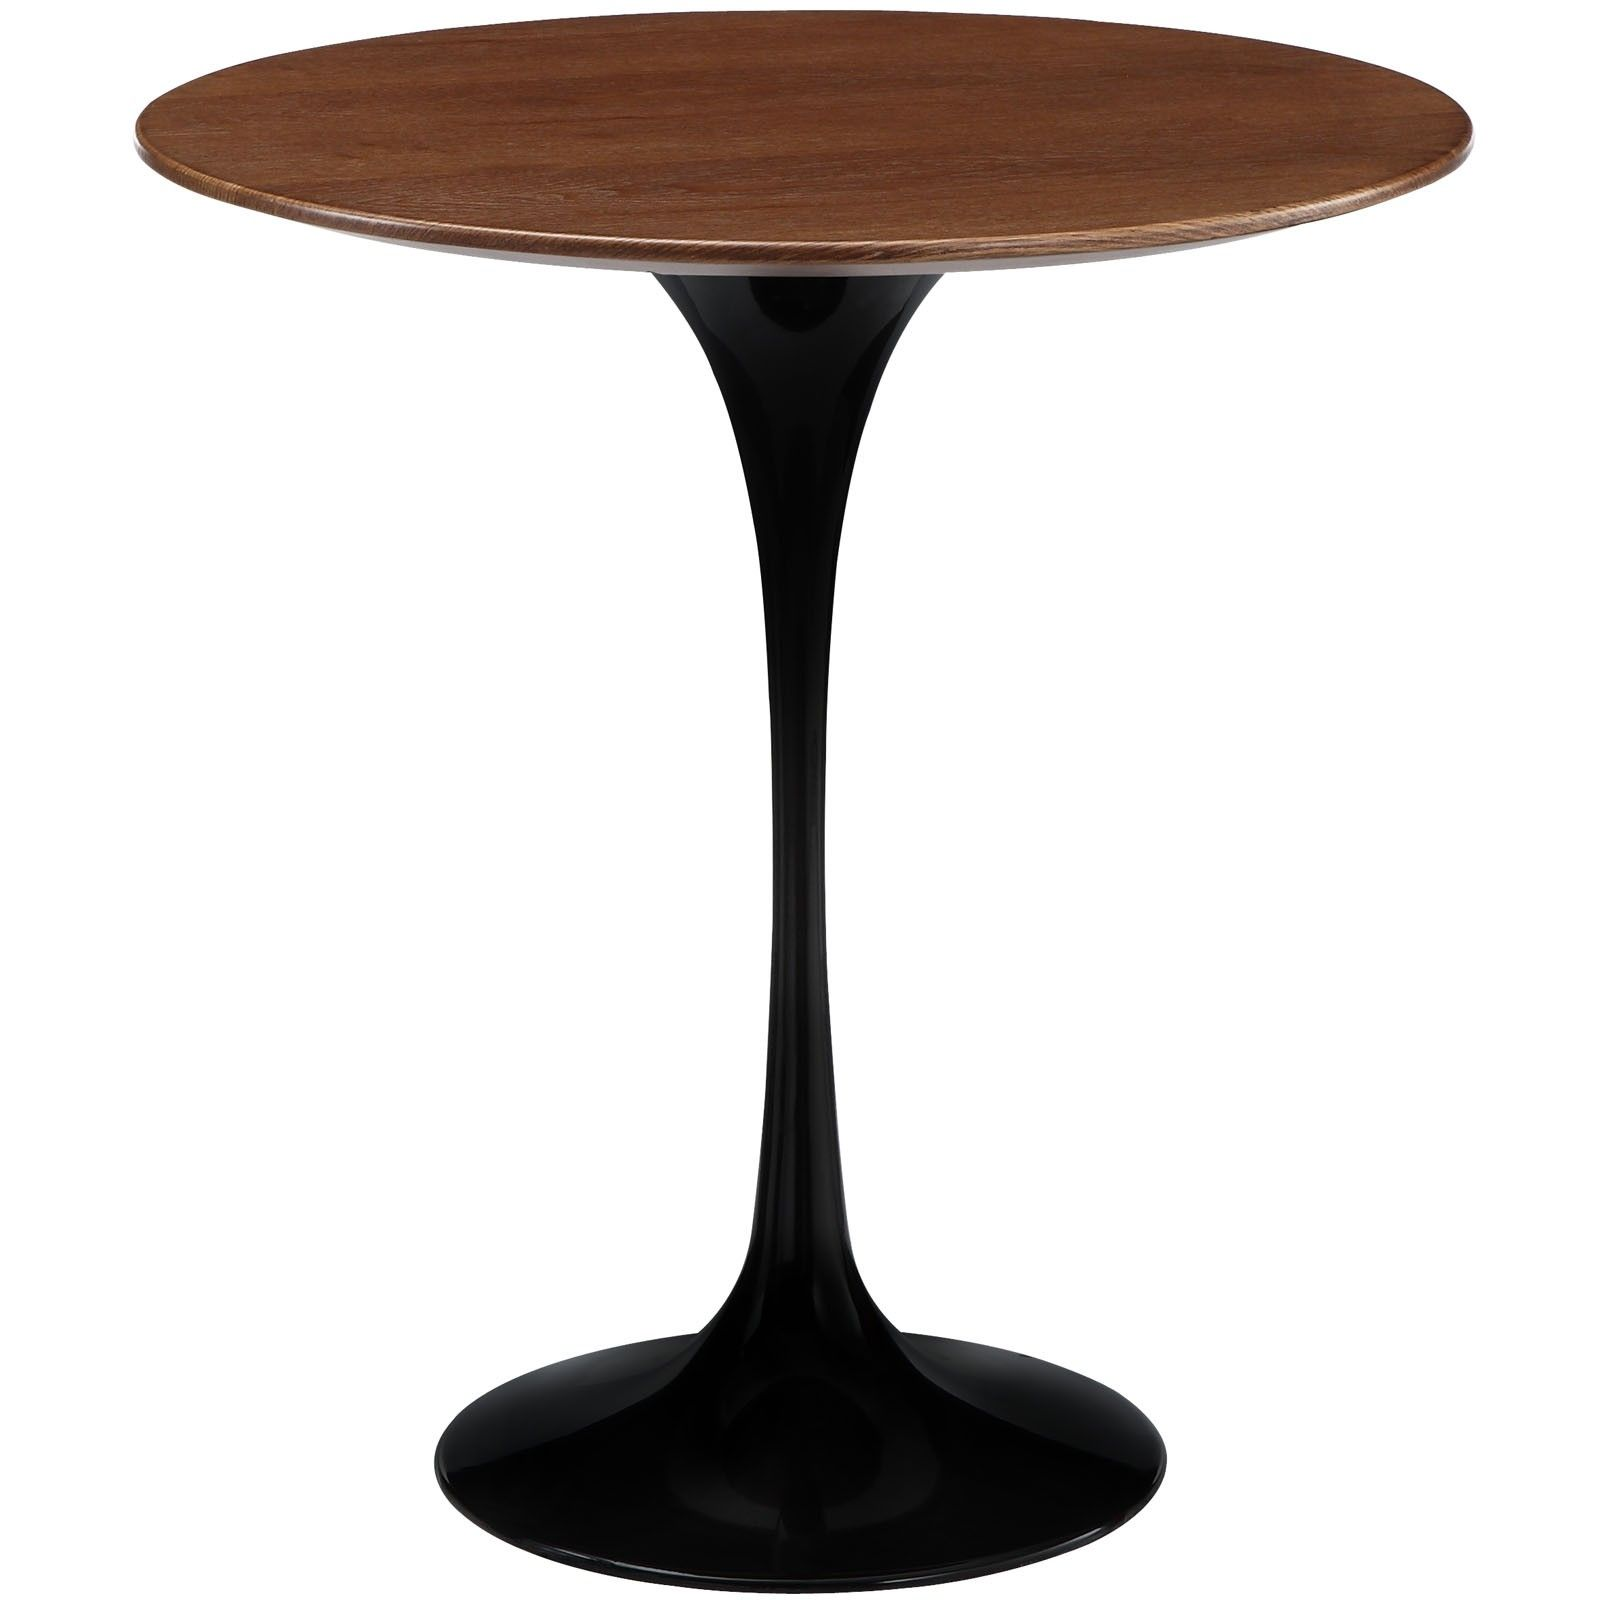 Modern wood side table  Side Table Round Modern  cielobautista  Pinterest